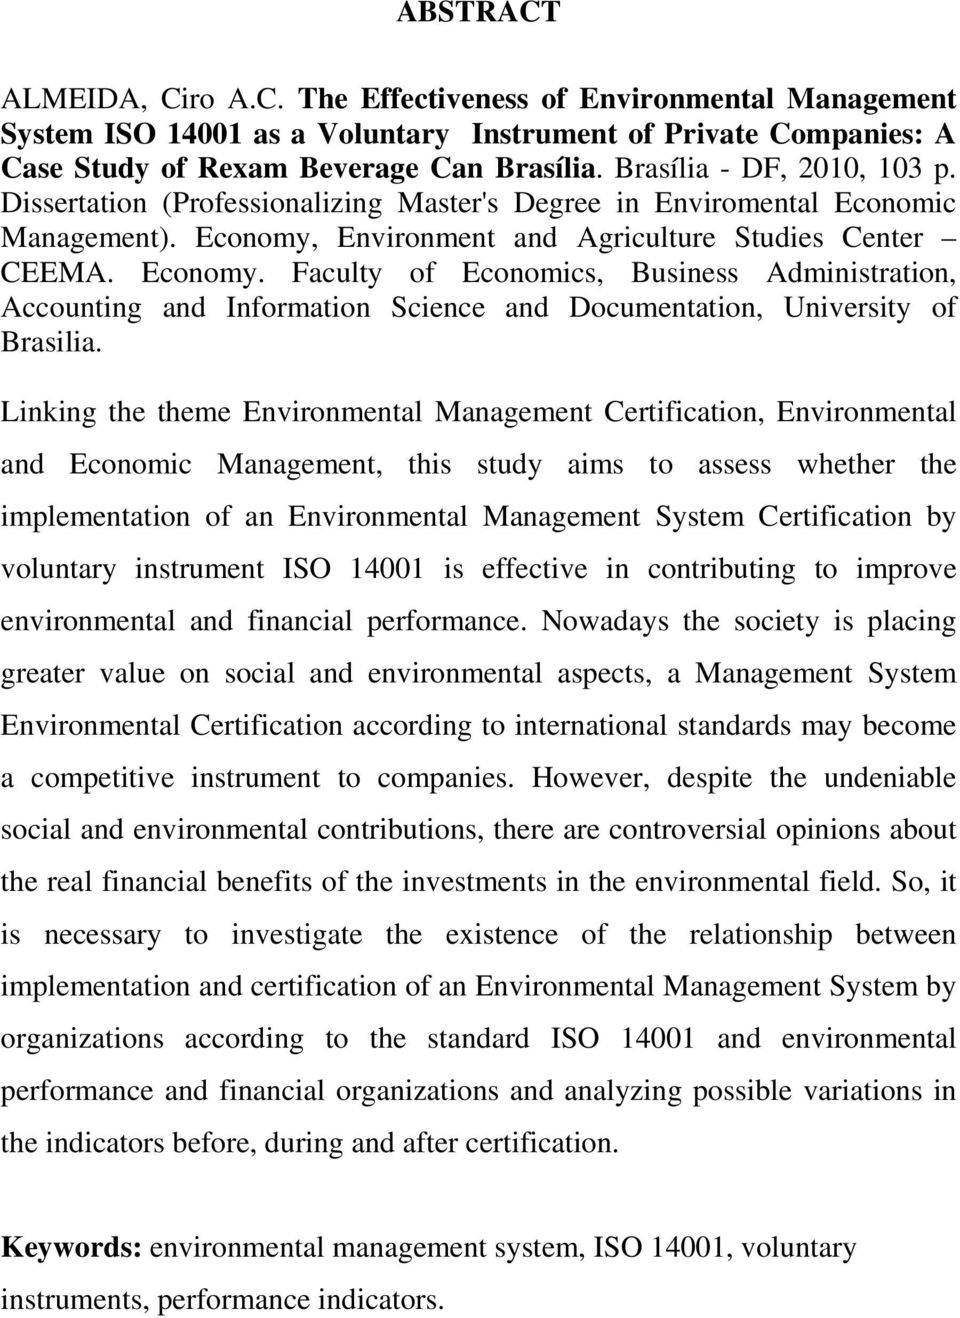 Environment and Agriculture Studies Center CEEMA. Economy. Faculty of Economics, Business Administration, Accounting and Information Science and Documentation, University of Brasilia.